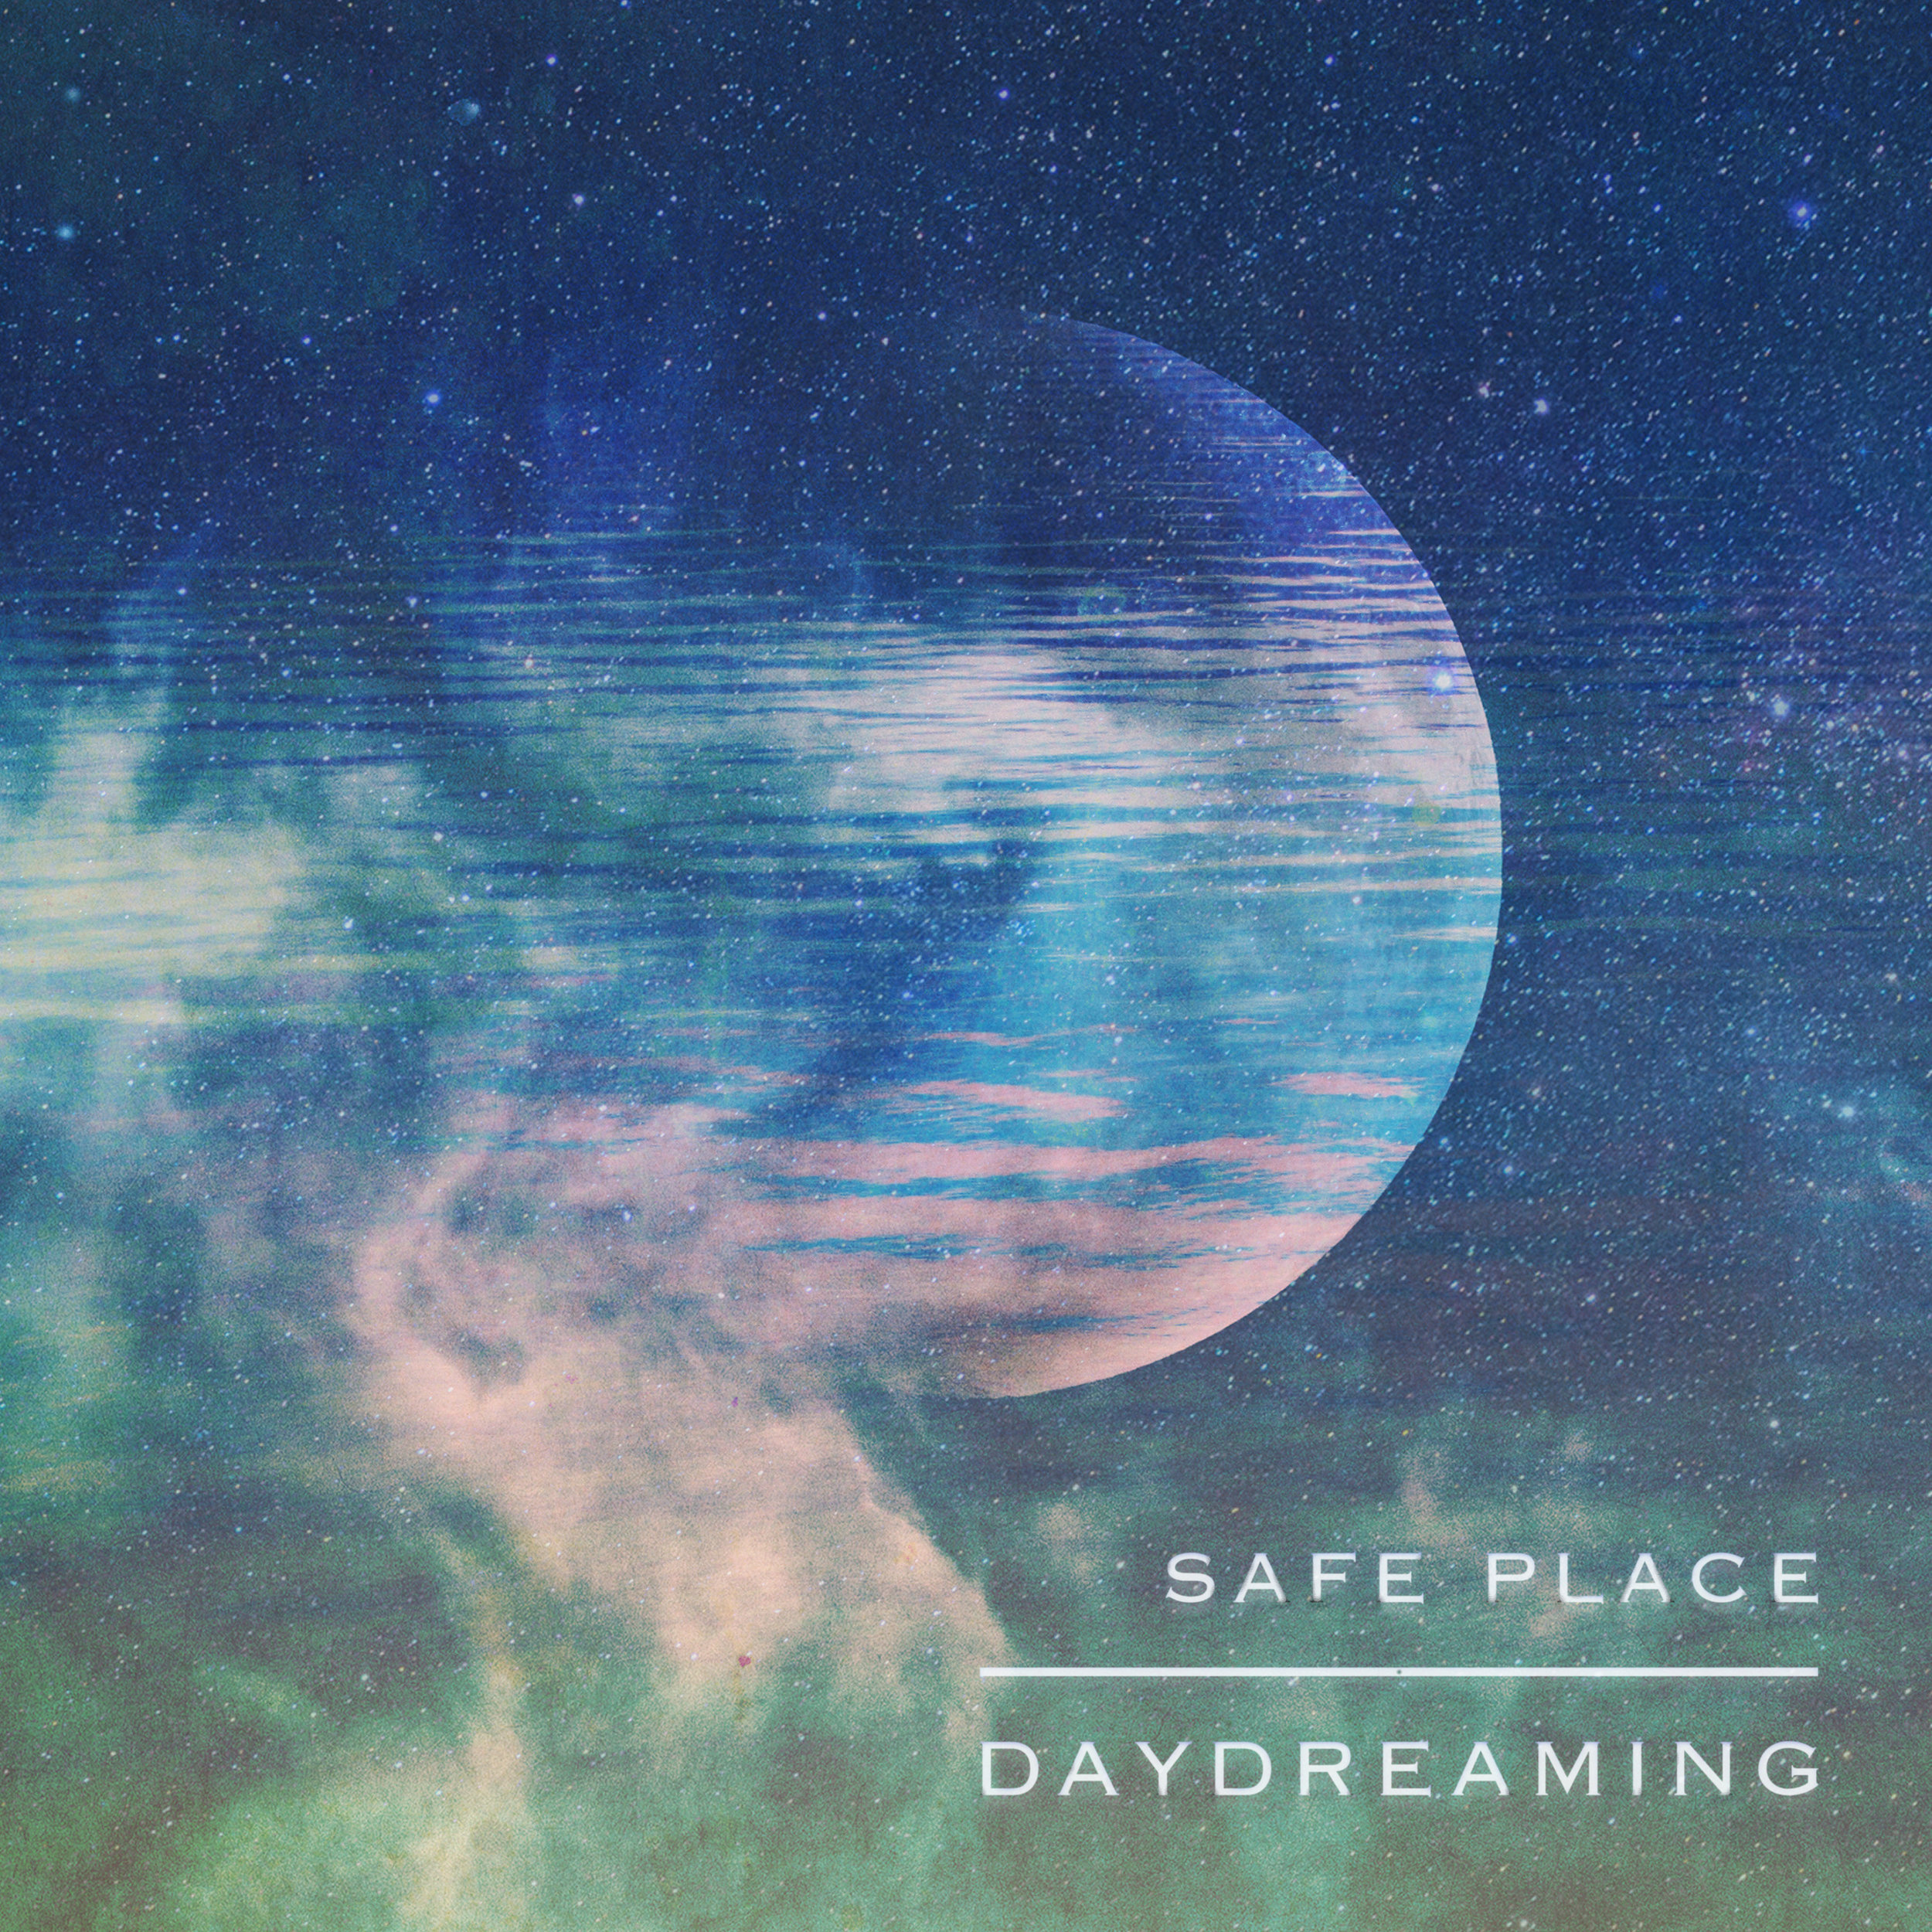 Daydreaming - Safe Place